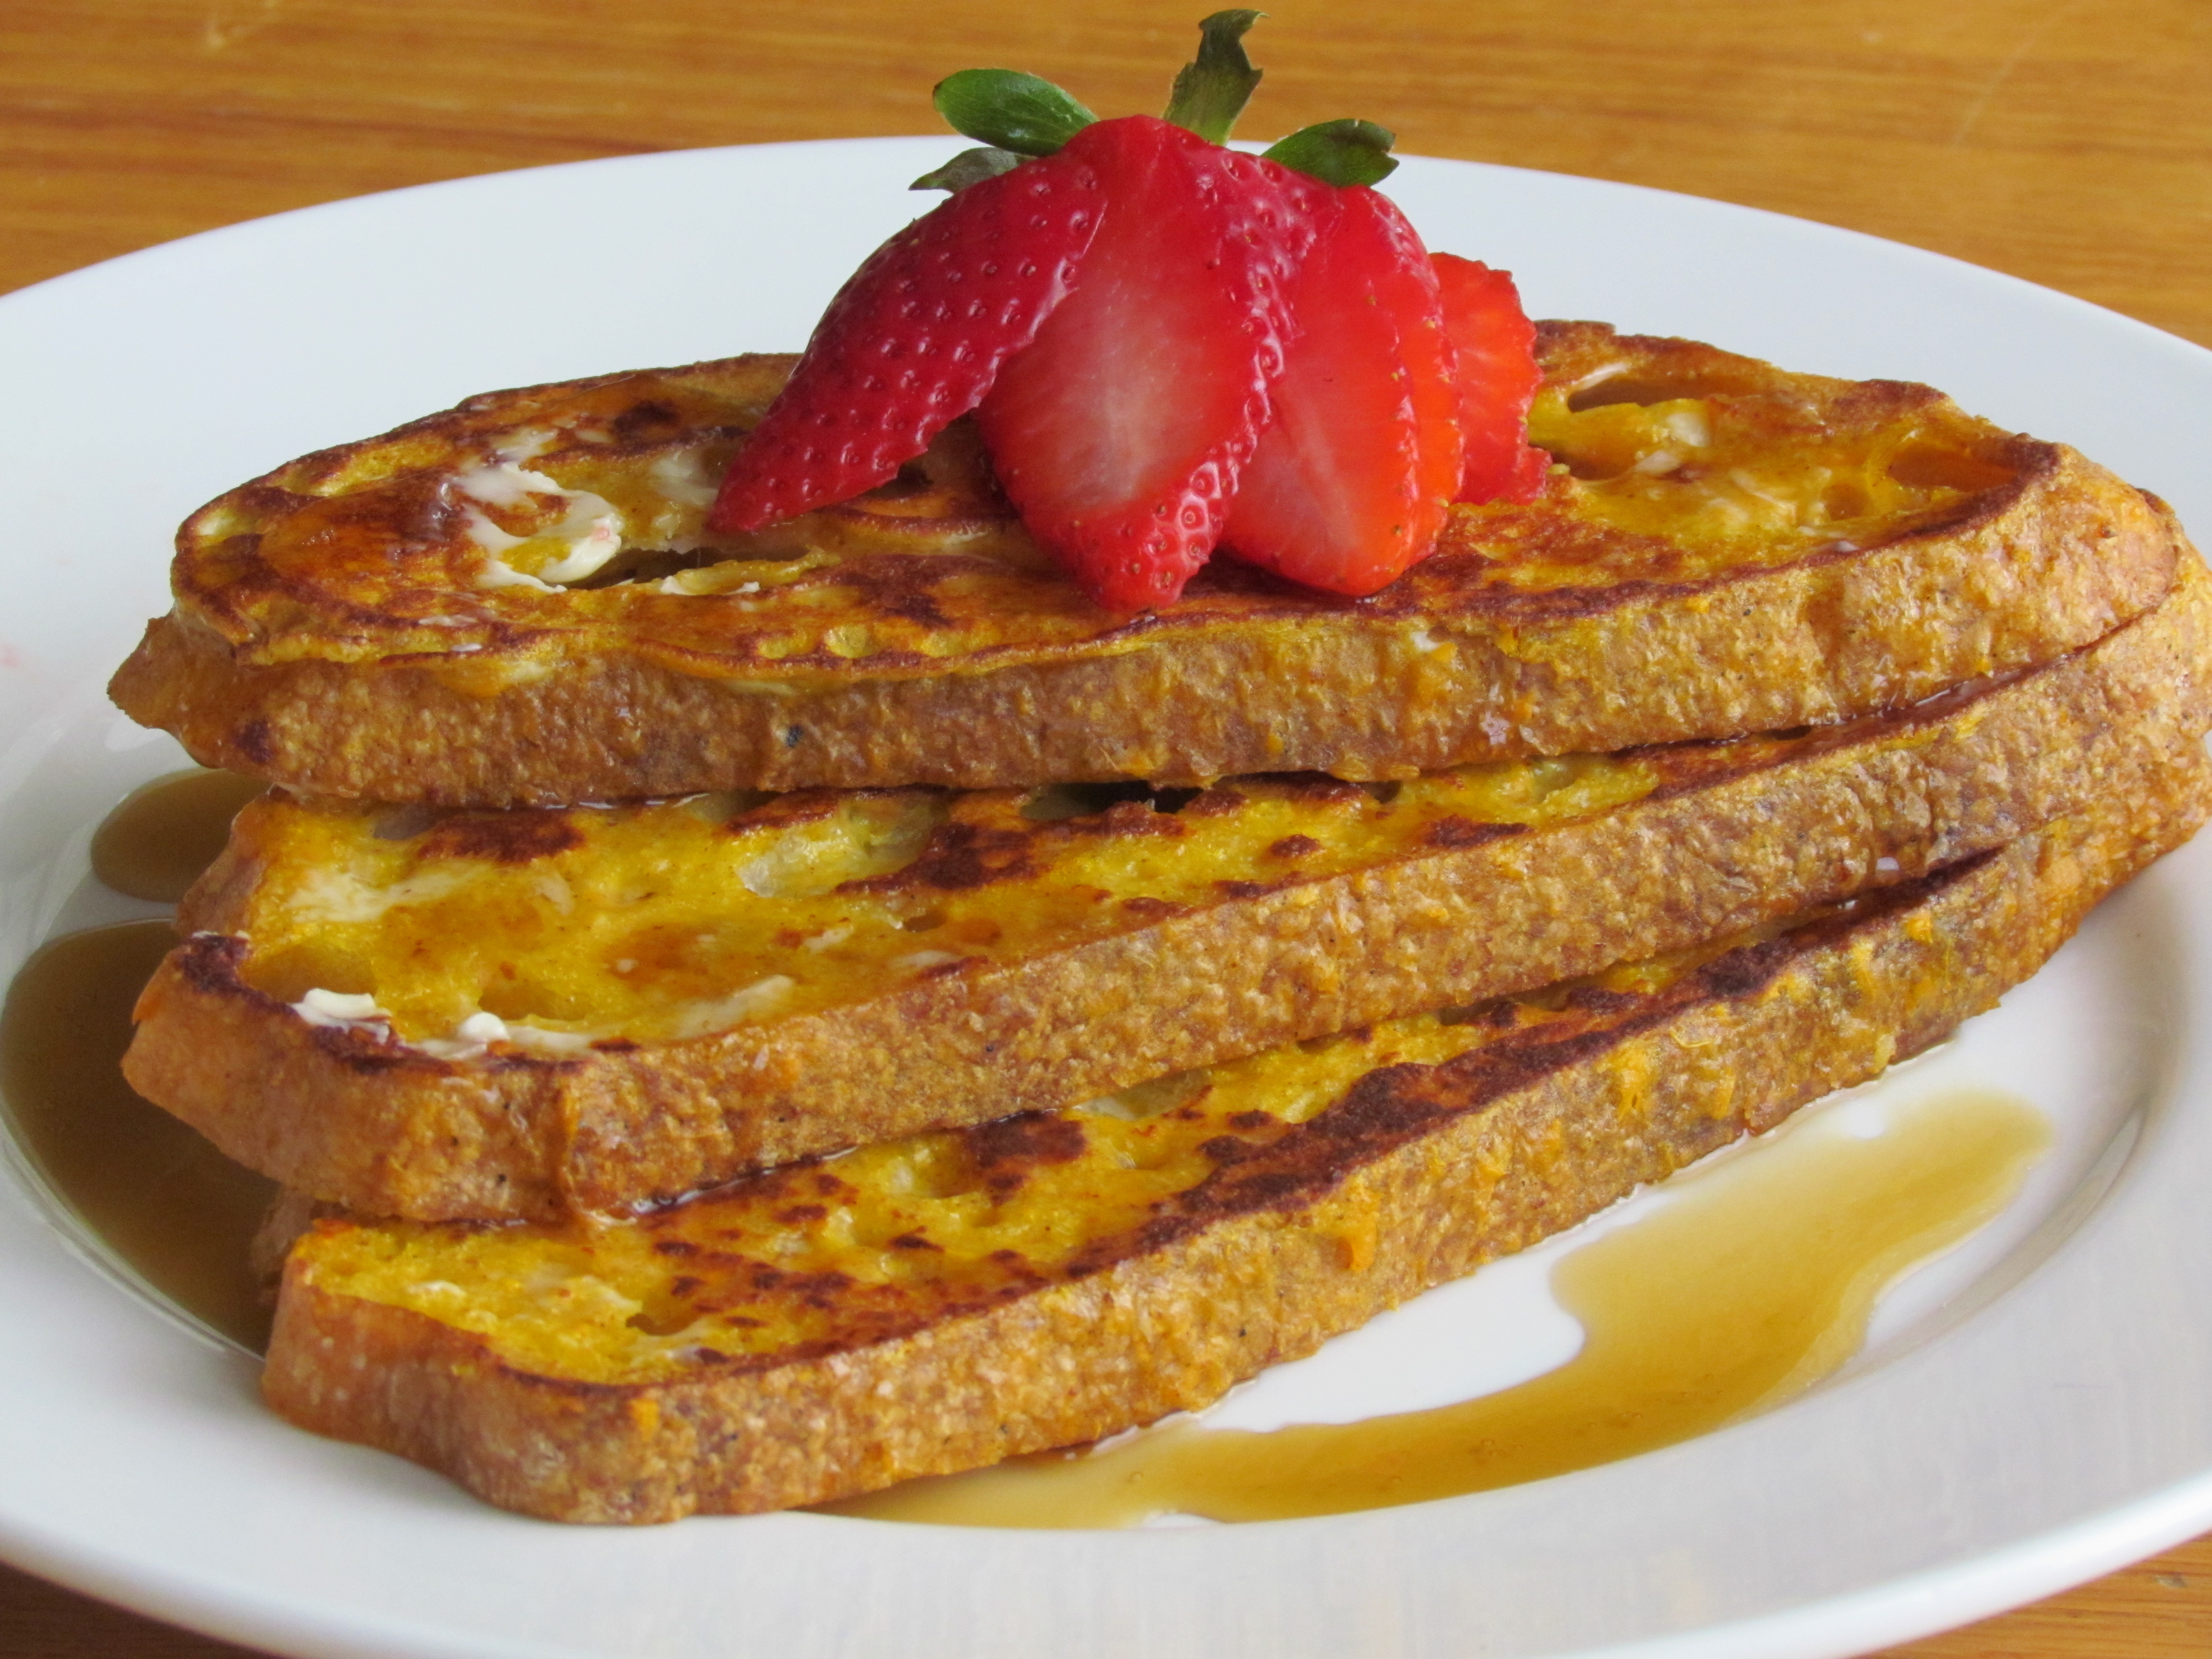 Whip up a bit of fall into your french toast batter and enjoy some extra nutrition at the same time with this recipe. A family favorite in our house!